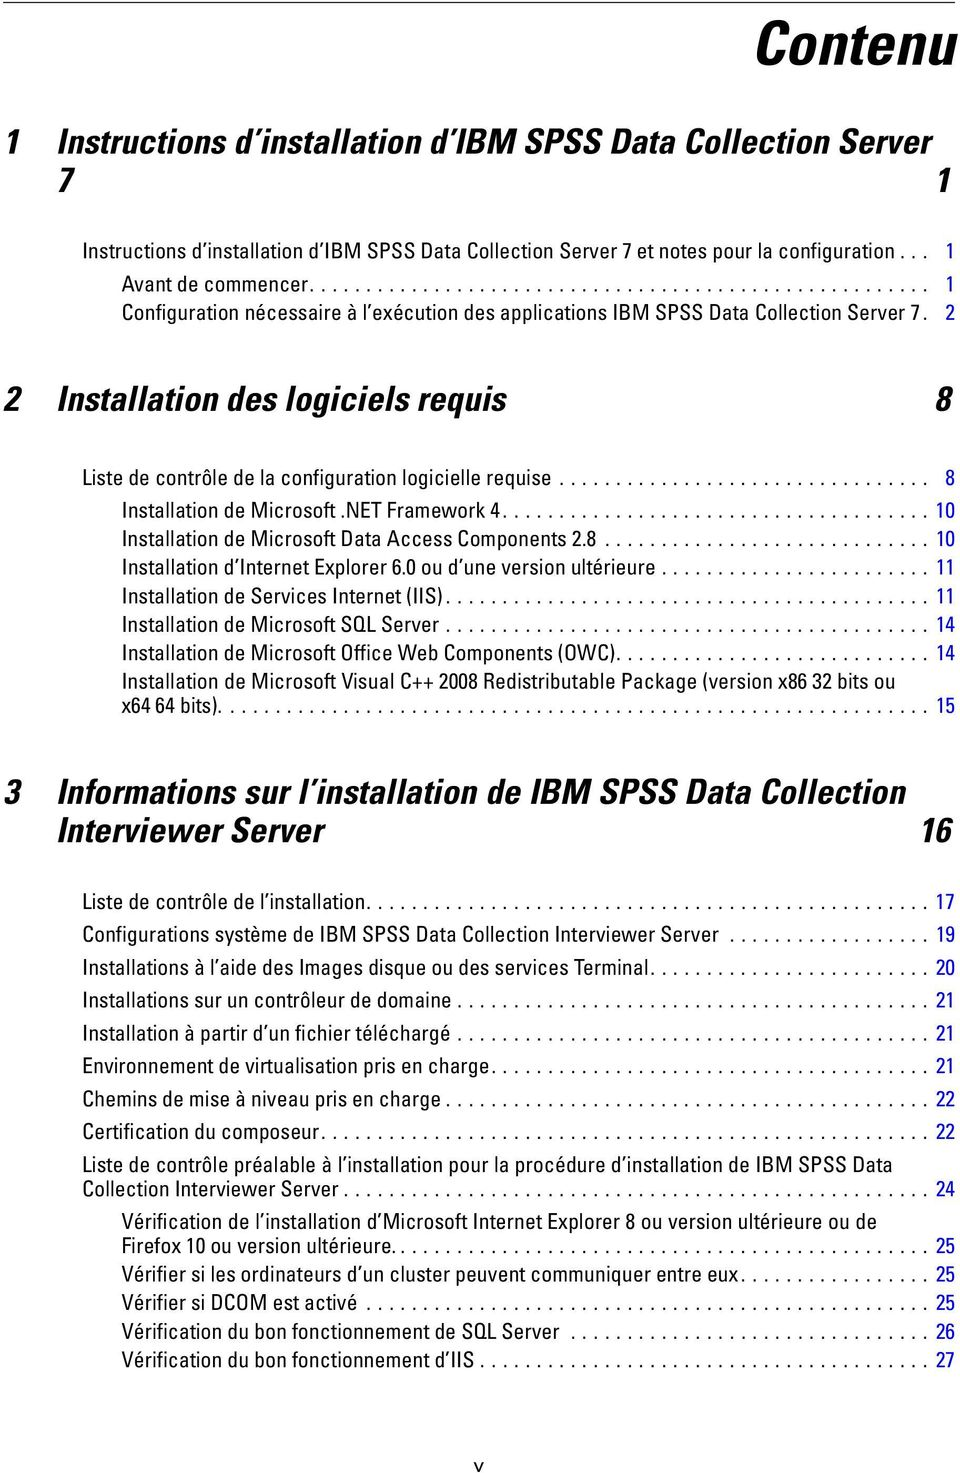 .. 8 InstallationdeMicrosoft.NTFramework4...10 InstallationdeMicrosoftDataAccessComponents2.8...10 Installationd Internetxplorer6.0oud uneversionultérieure...11 InstallationdeServicesInternet(IIS).